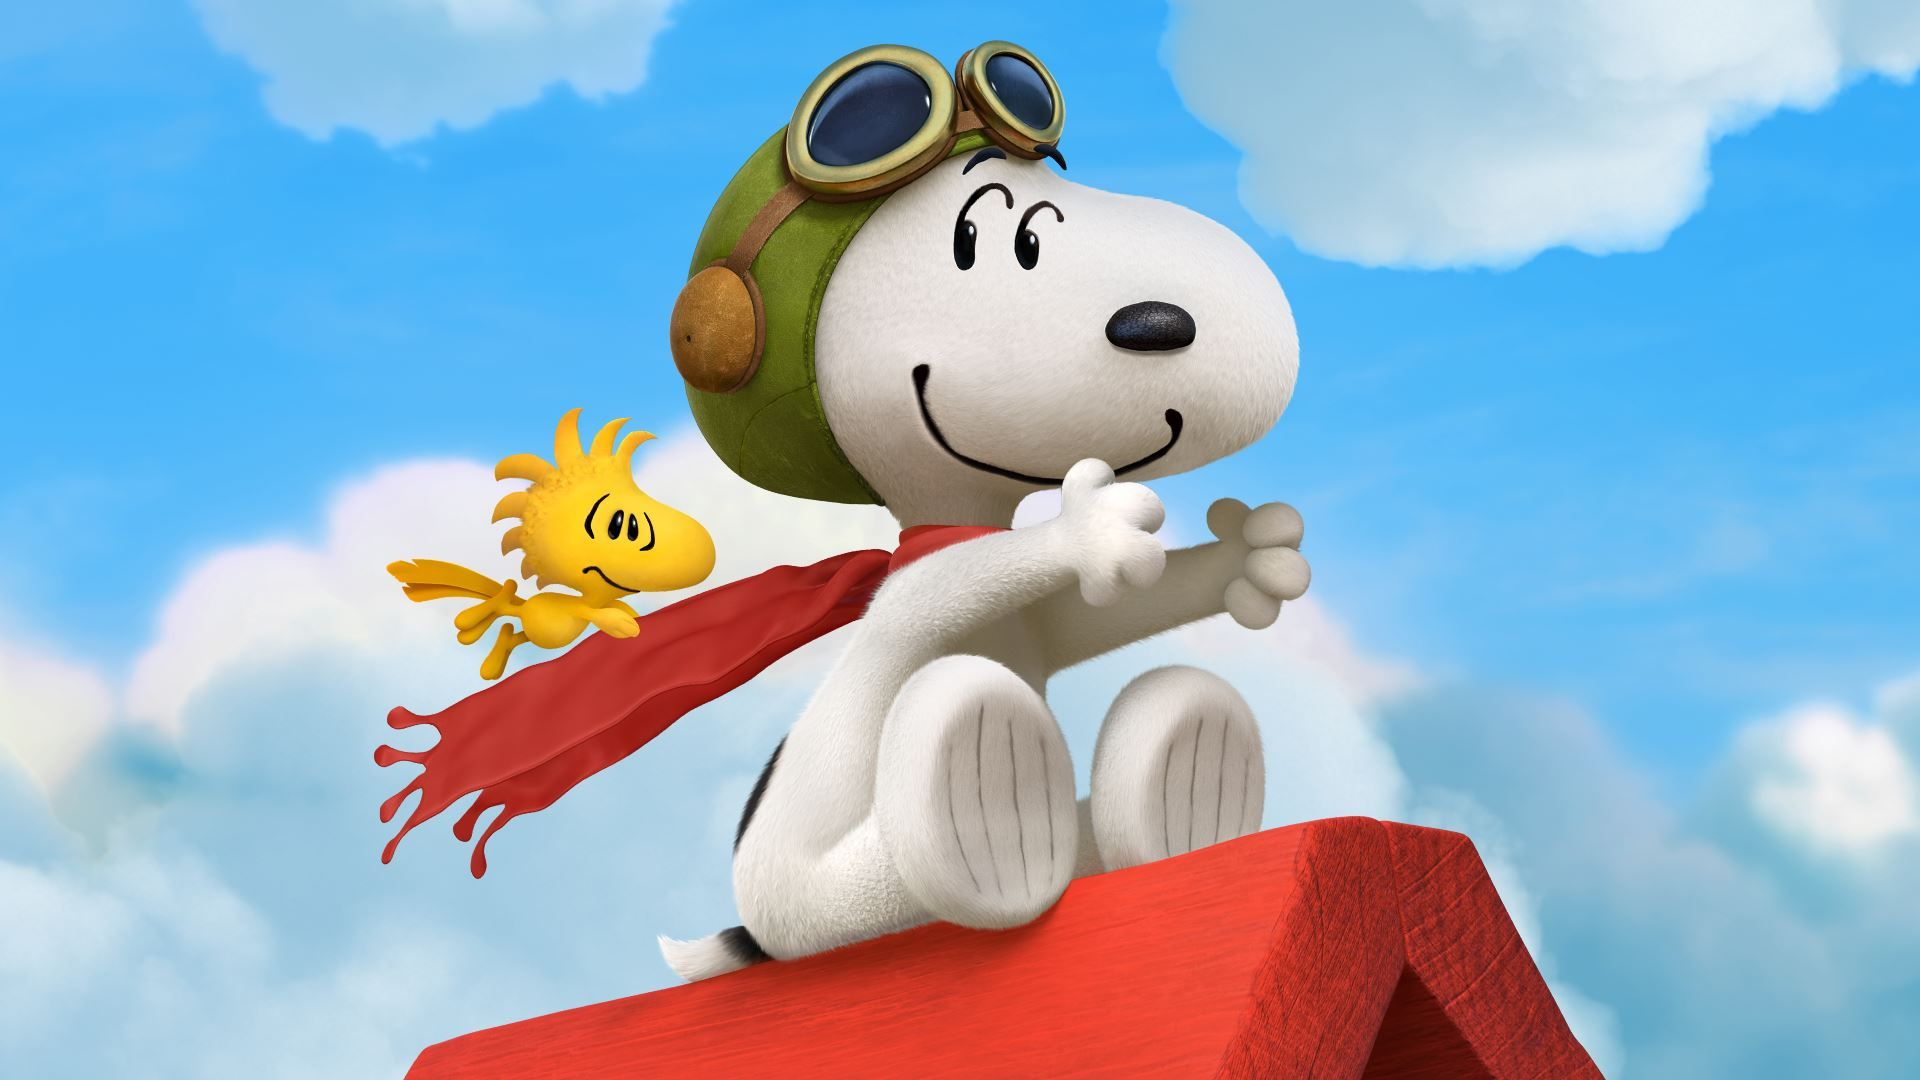 Snoopy Flying Ace image by Michelle Myricks Charlie